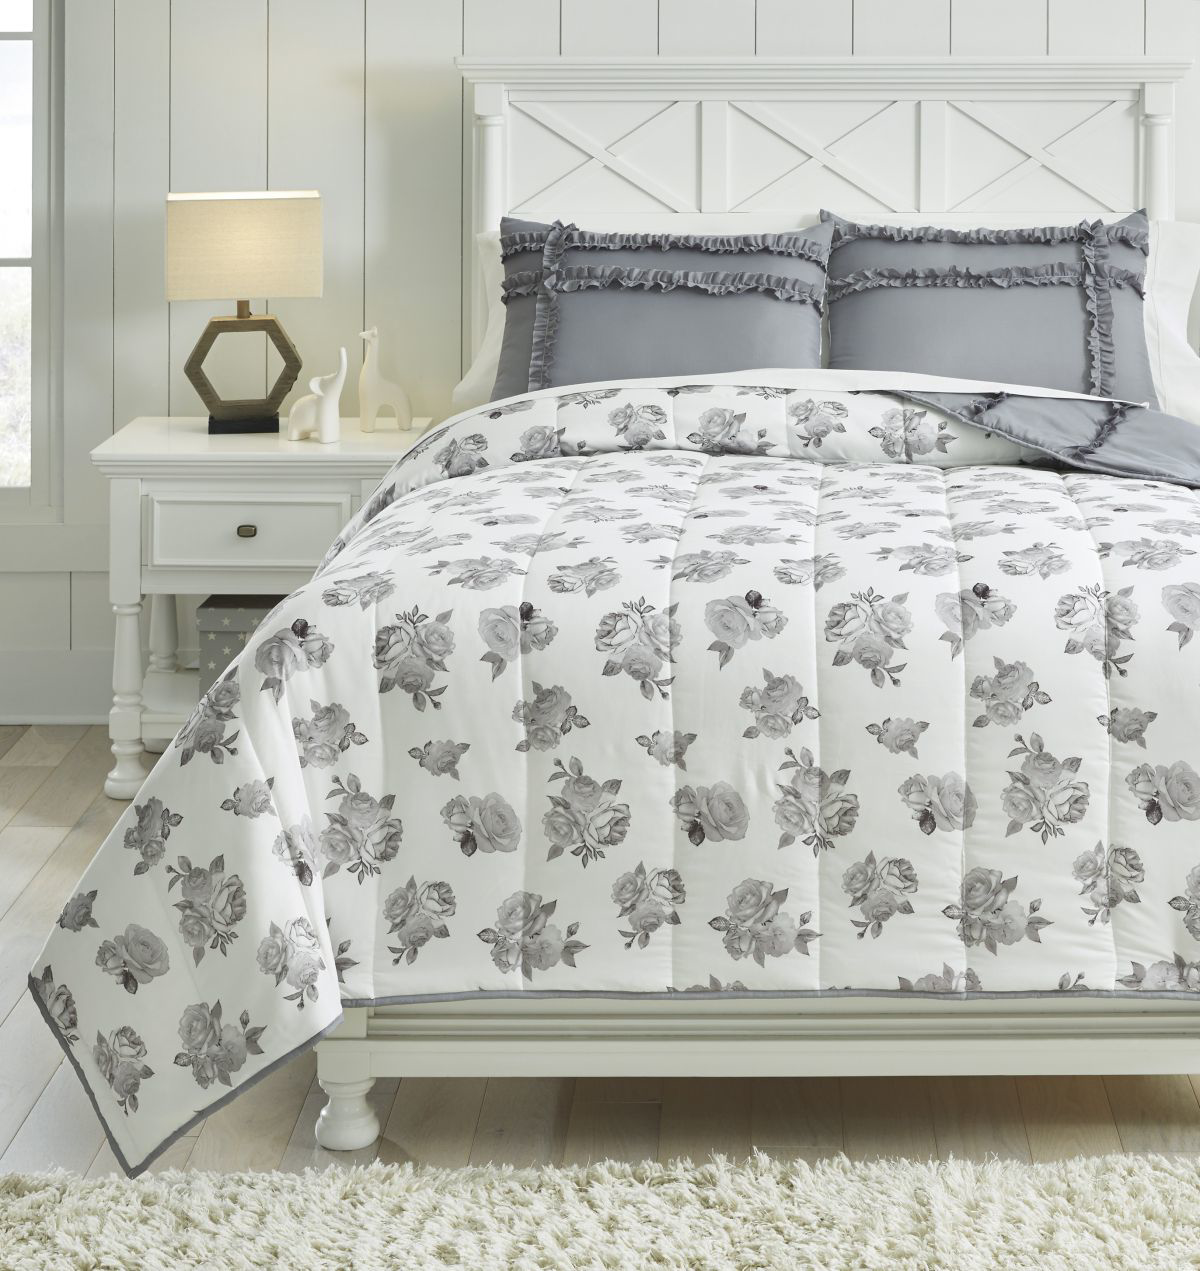 Picture of Meghdad Full Comforter Set